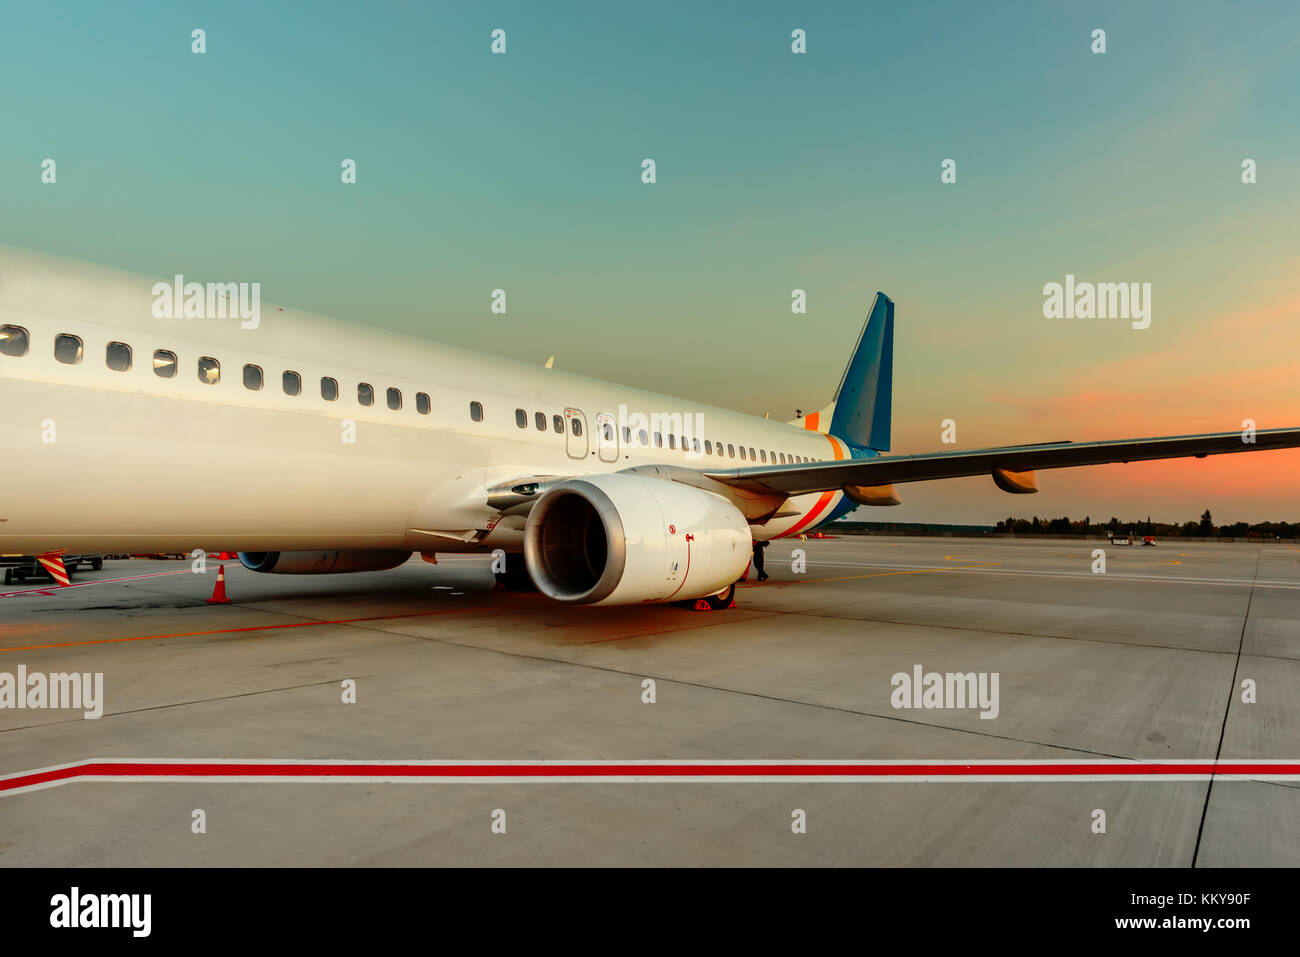 To the passengers' services is a modern airport building, quality and qualified service and preparation of aircraft - Stock Image